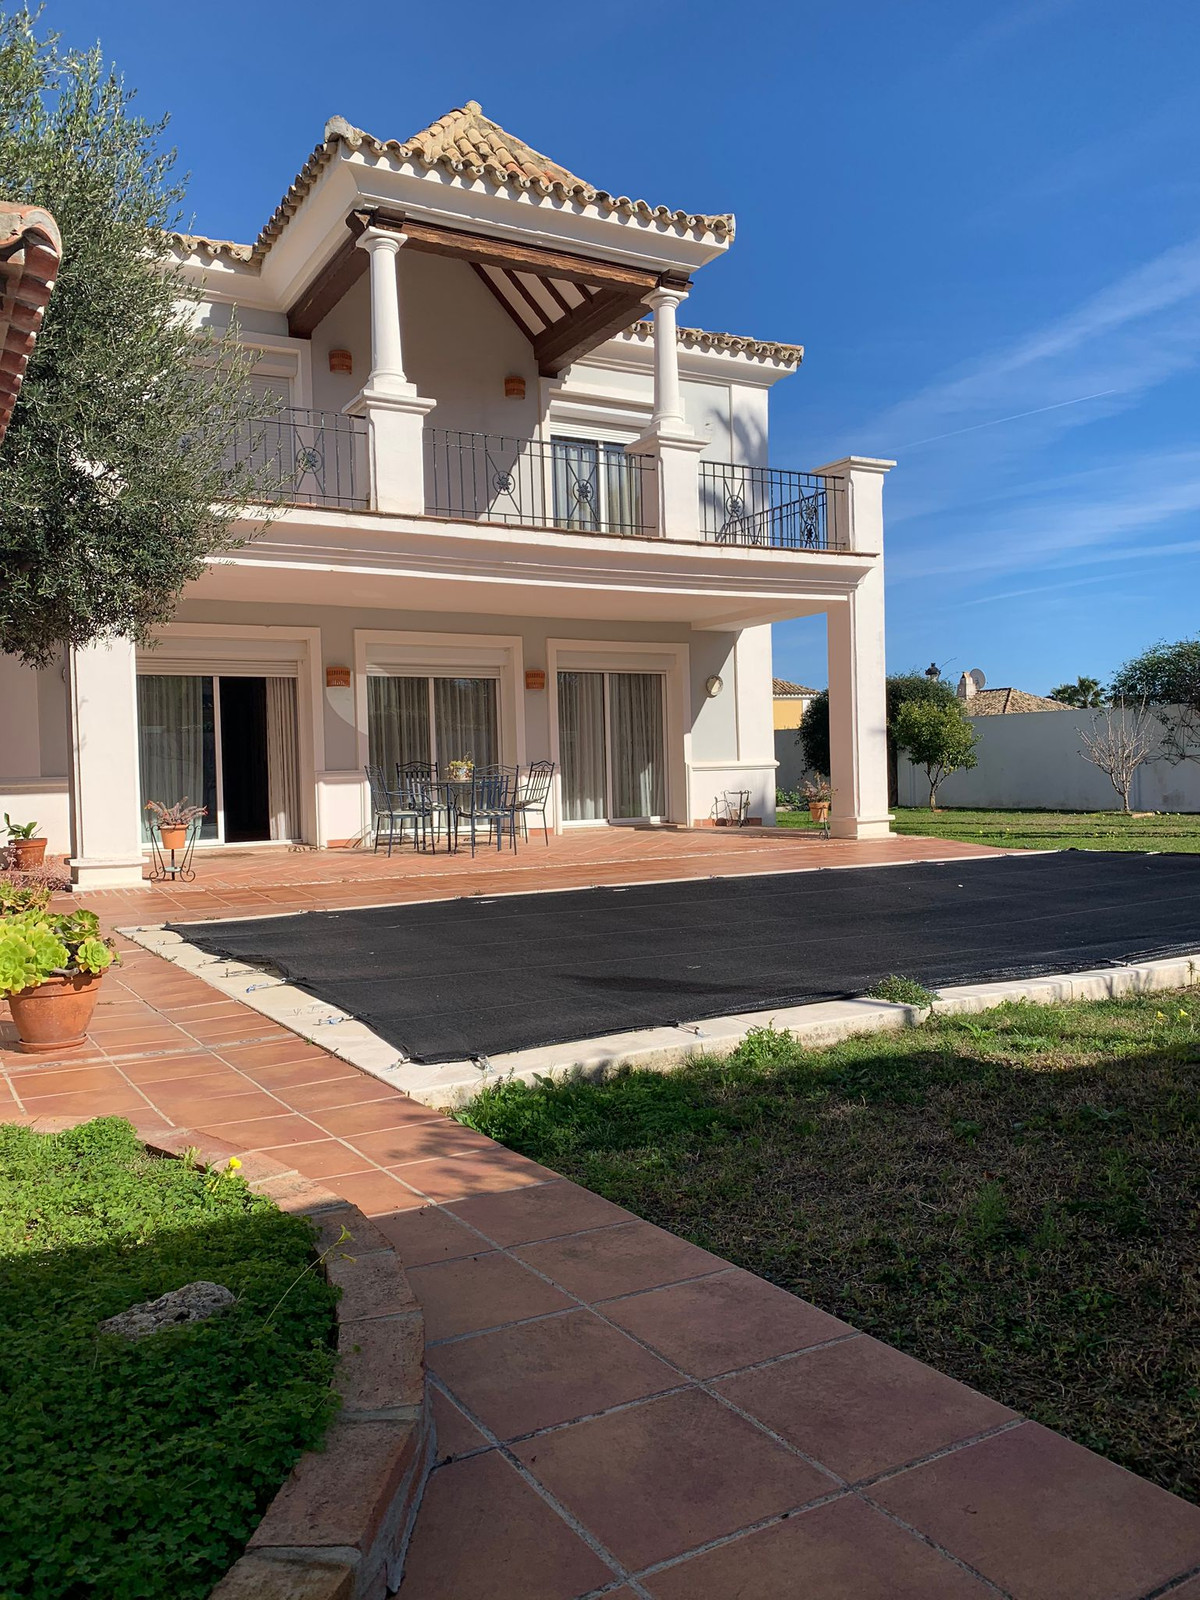 Magnificent independent villa in an exclusive urbanization of La Duquesa It is located in a gated co, Spain